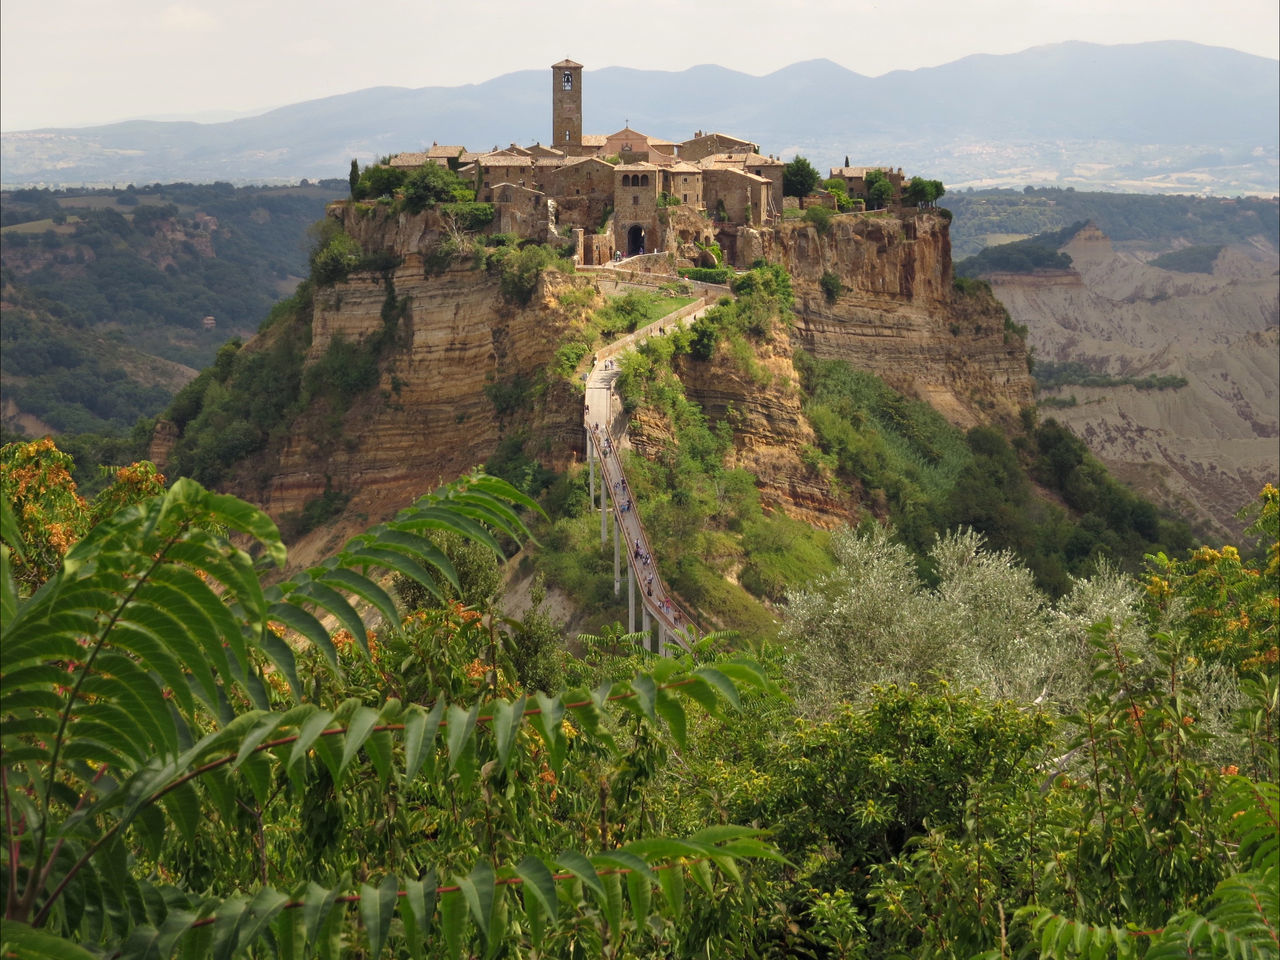 Architecture Beauty In Nature History Landscape_photography Old Village Outdoors Scenics Sheer Cliff Tuff